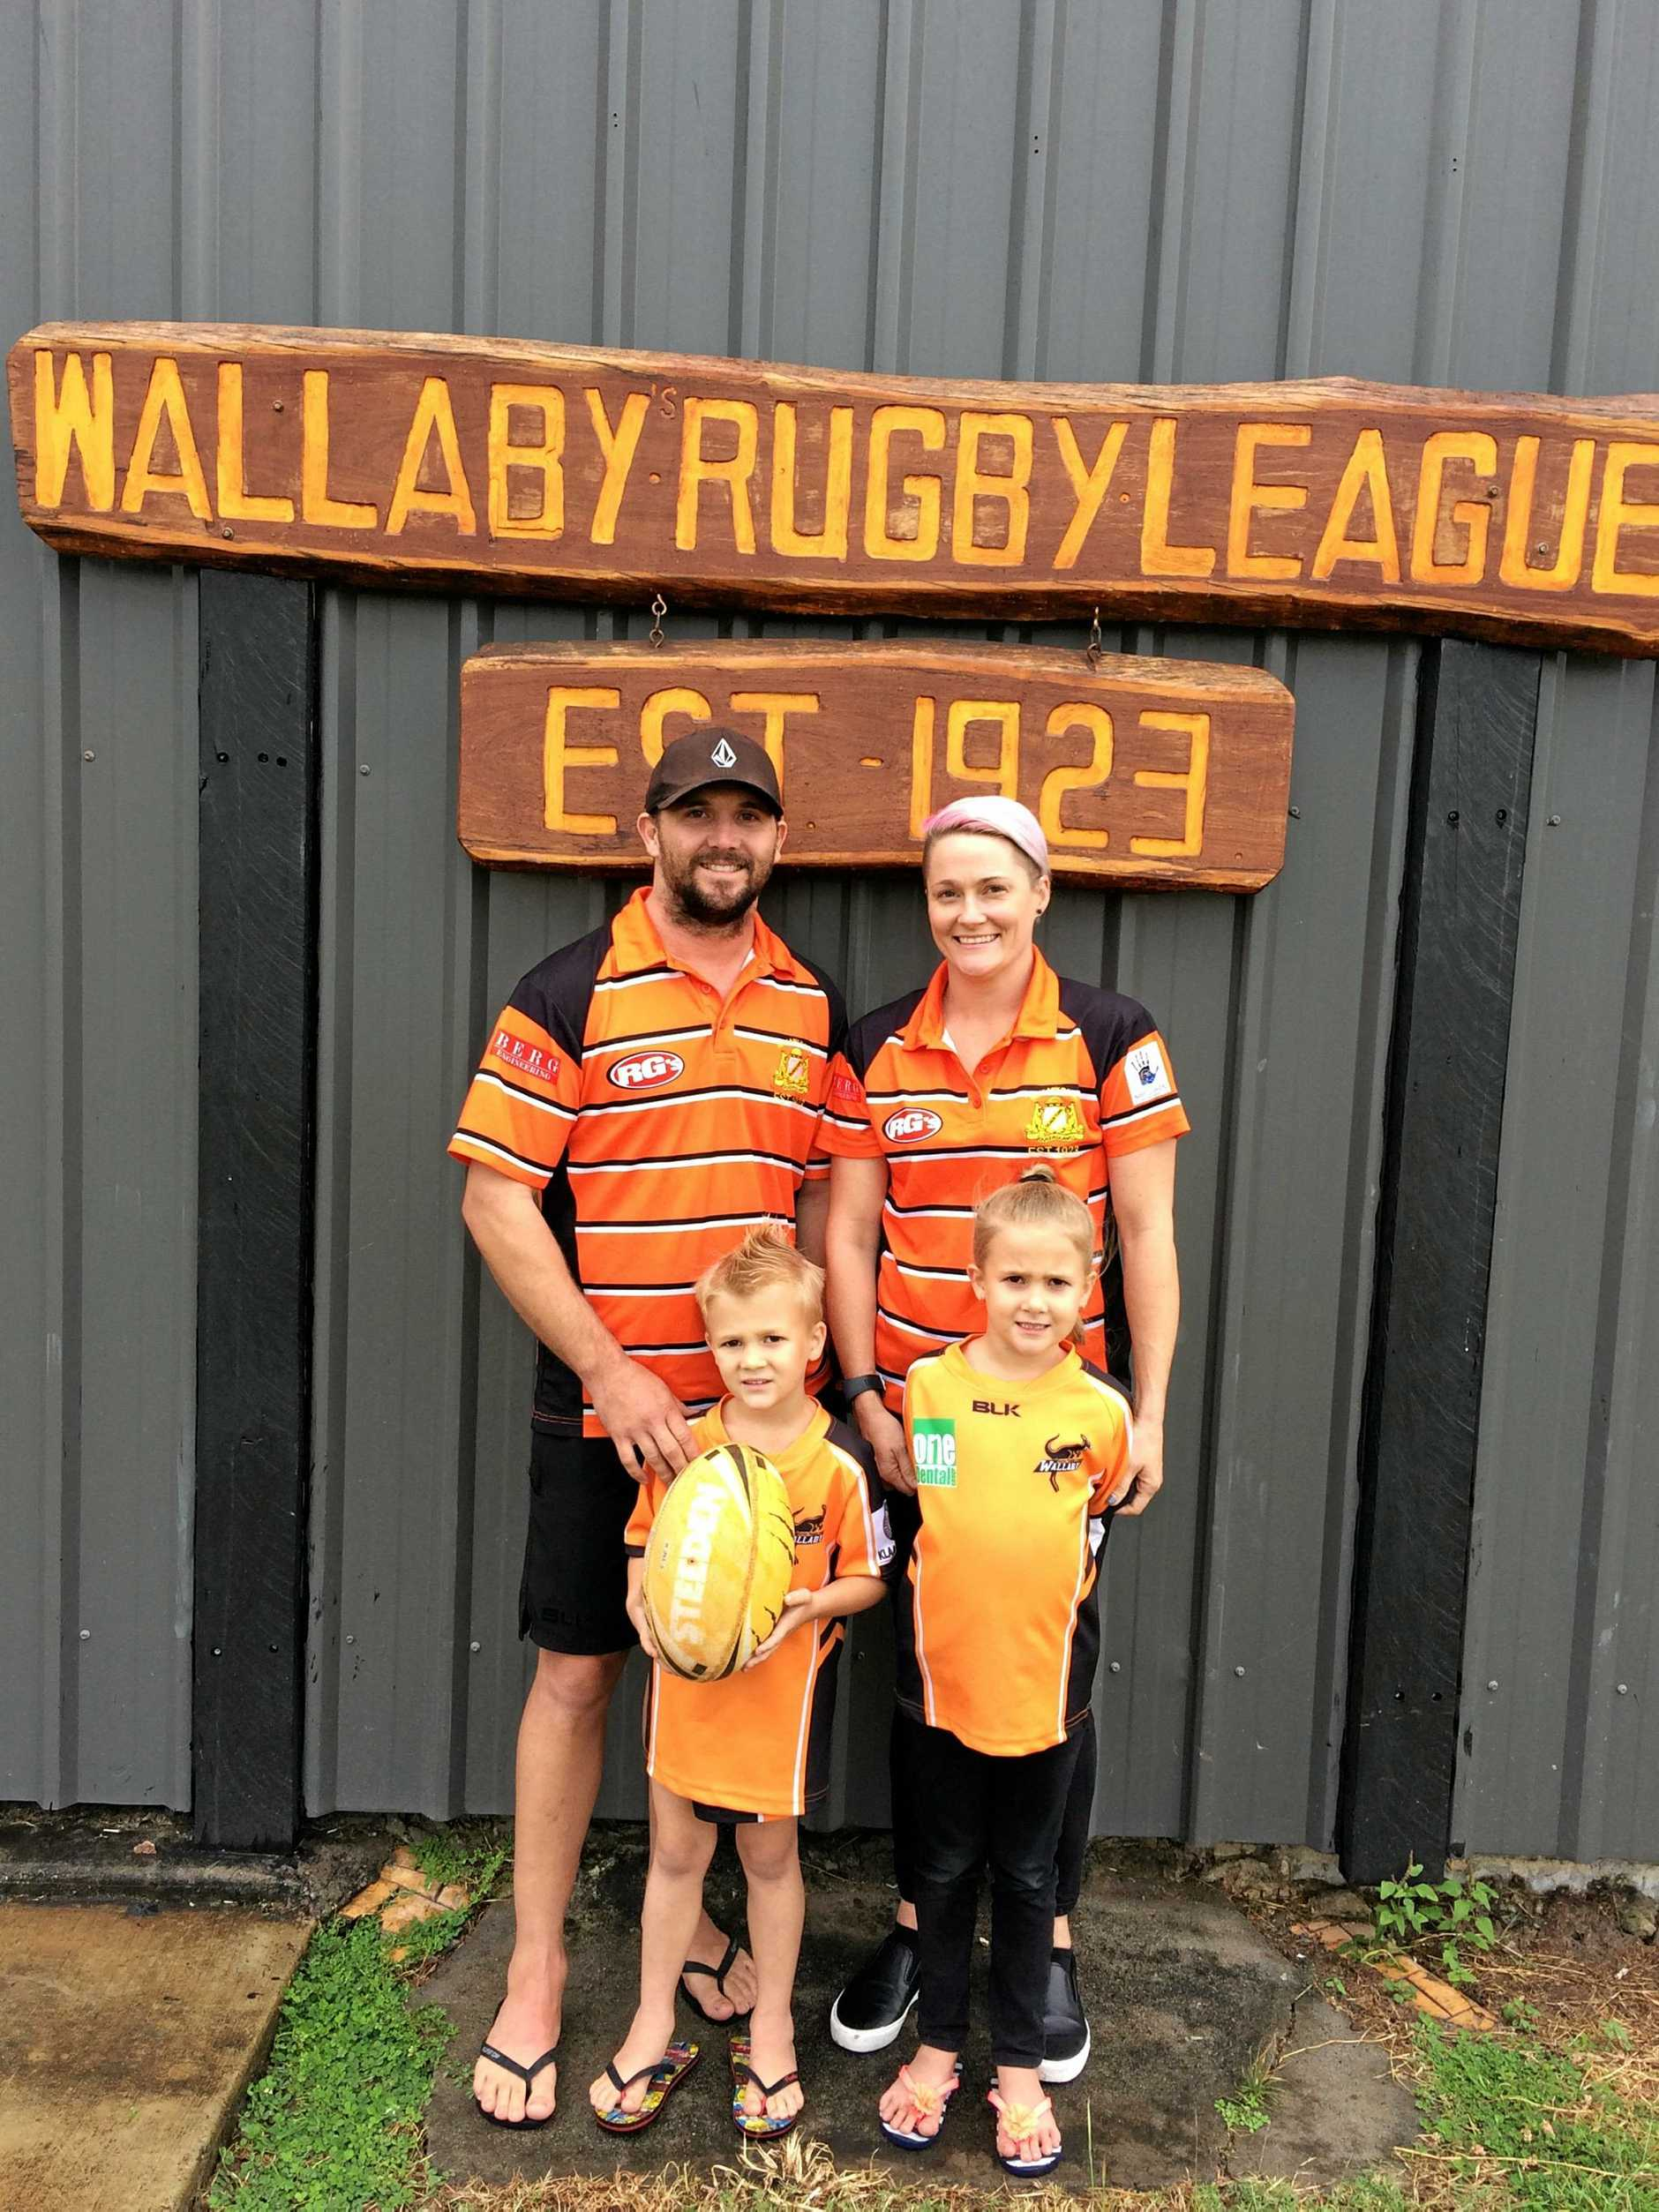 FAMILY AFFAIR: Matt and Chelsea Baker with children Quade and Maddison. Matt and Chelsea will play for Wallabys this weekend, while Quade will play for the under-6s.